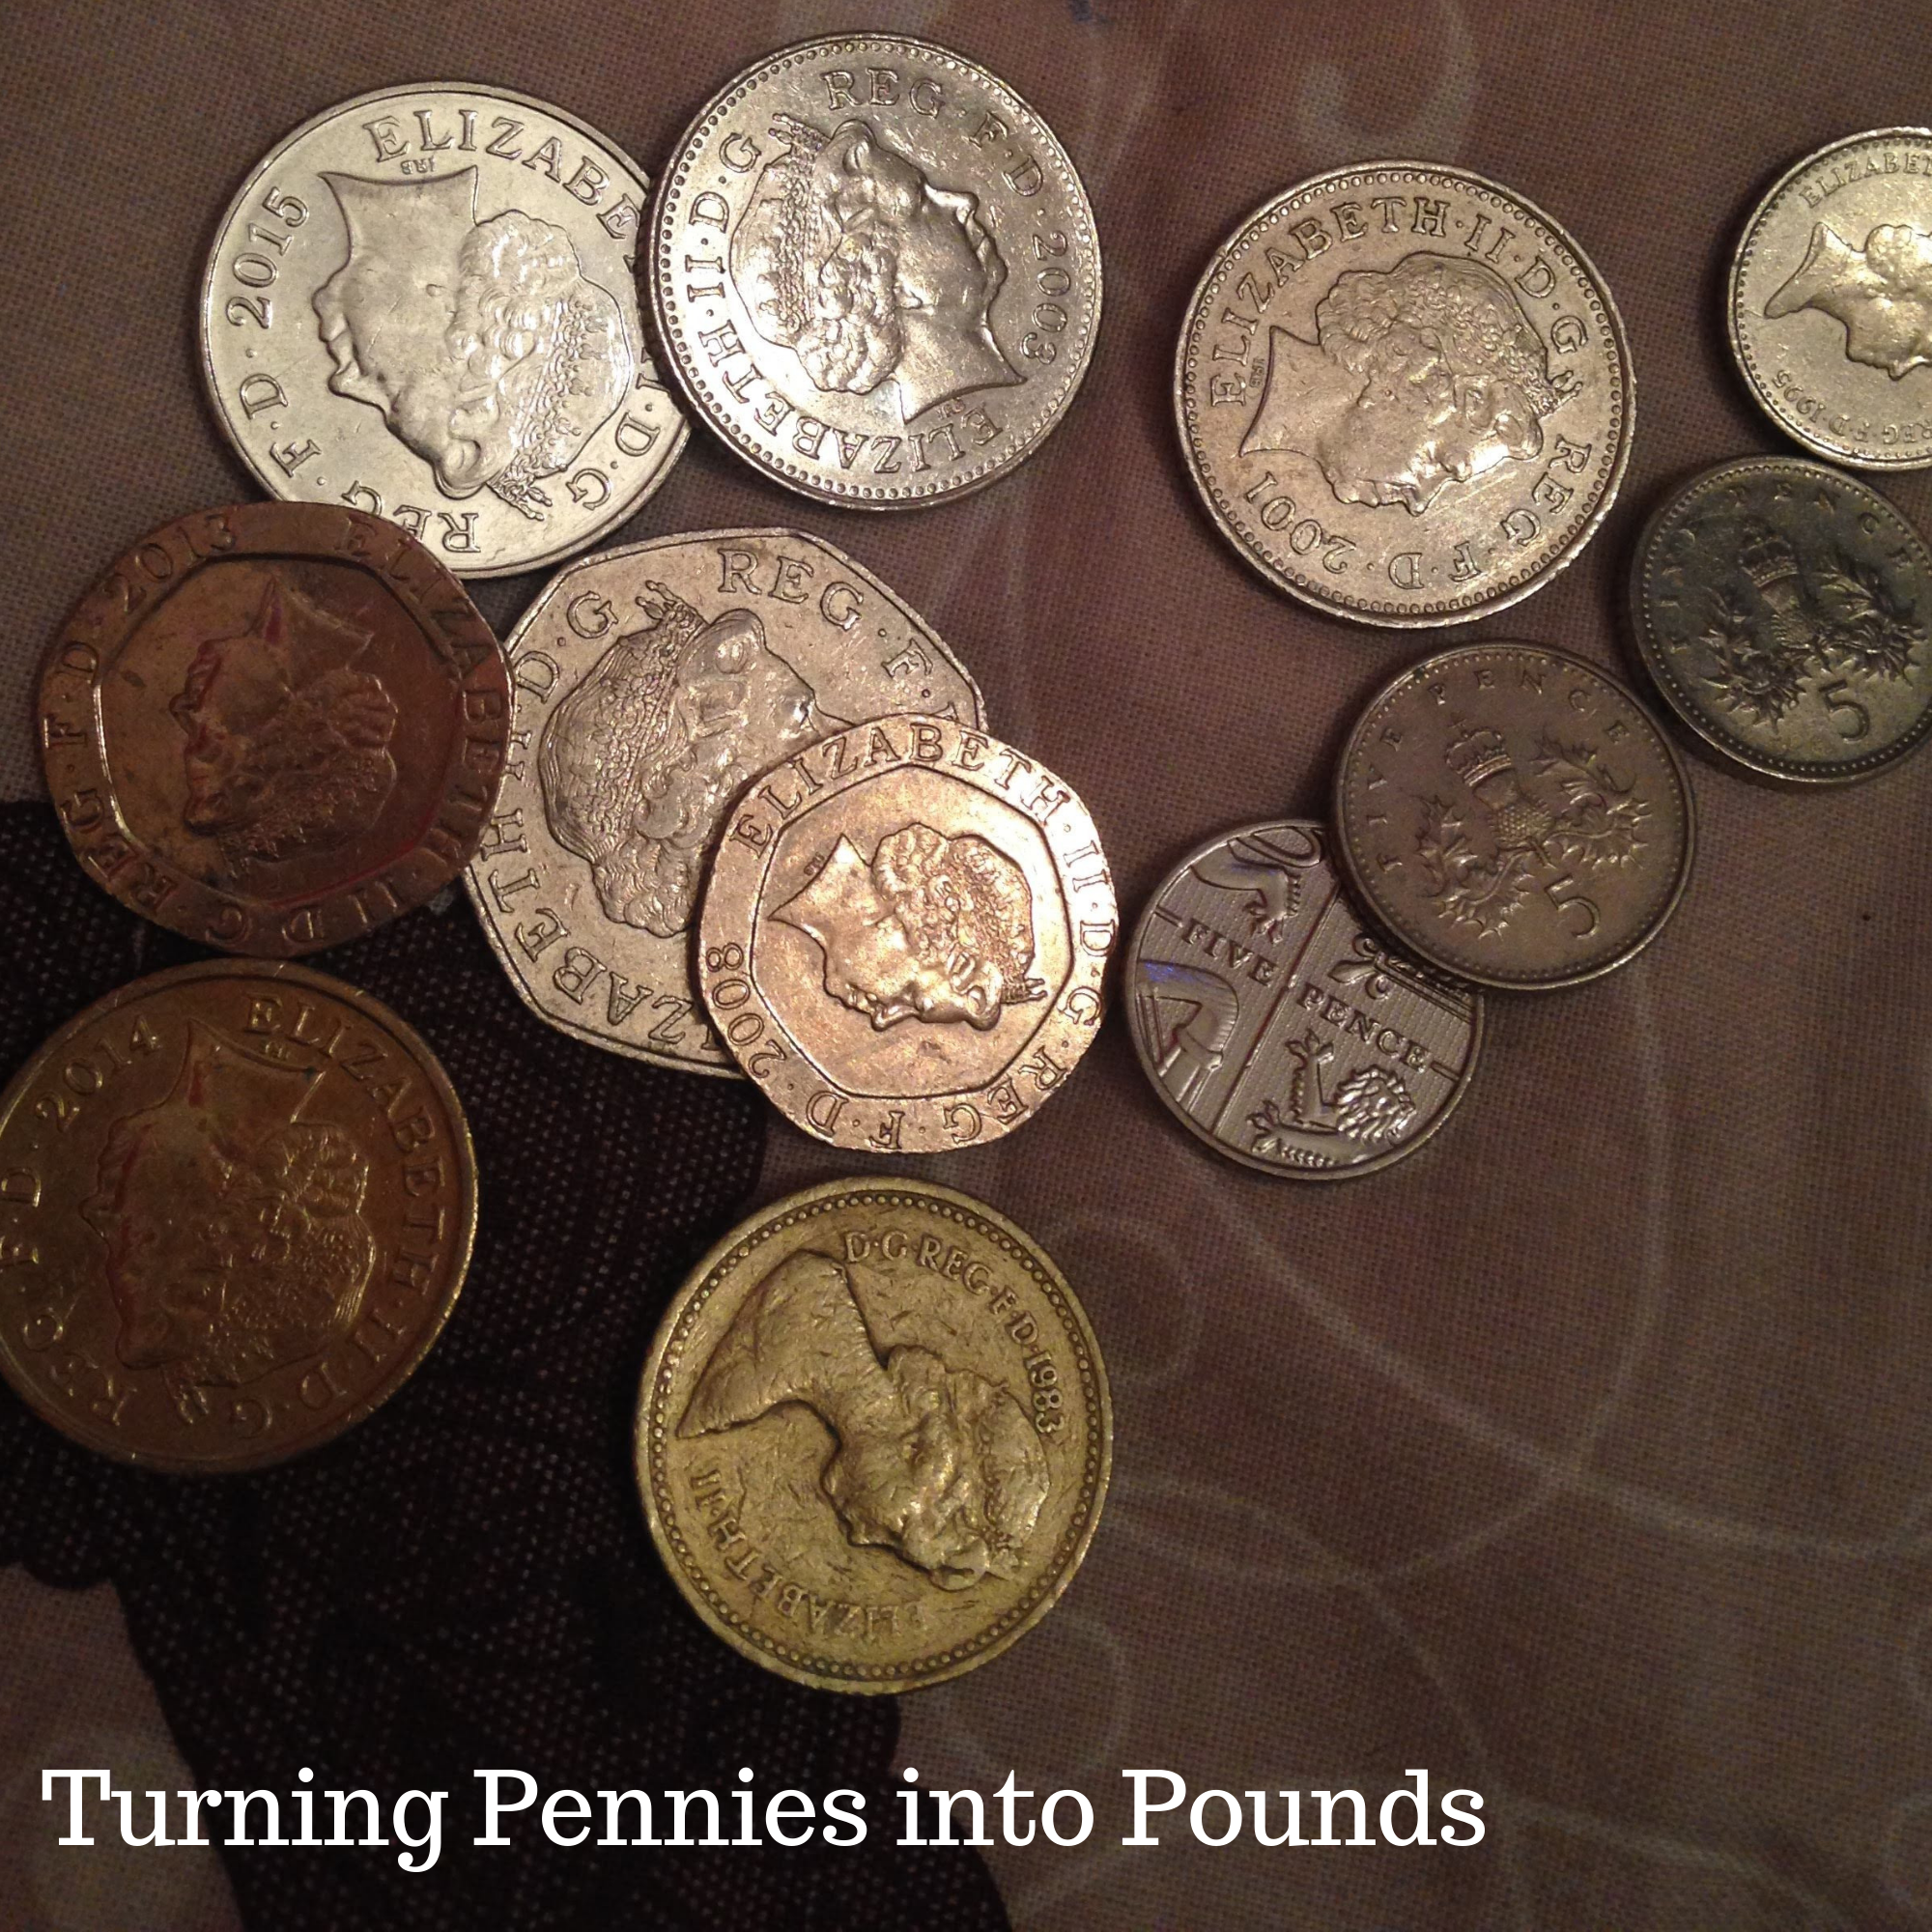 Turning Pennies into Pounds